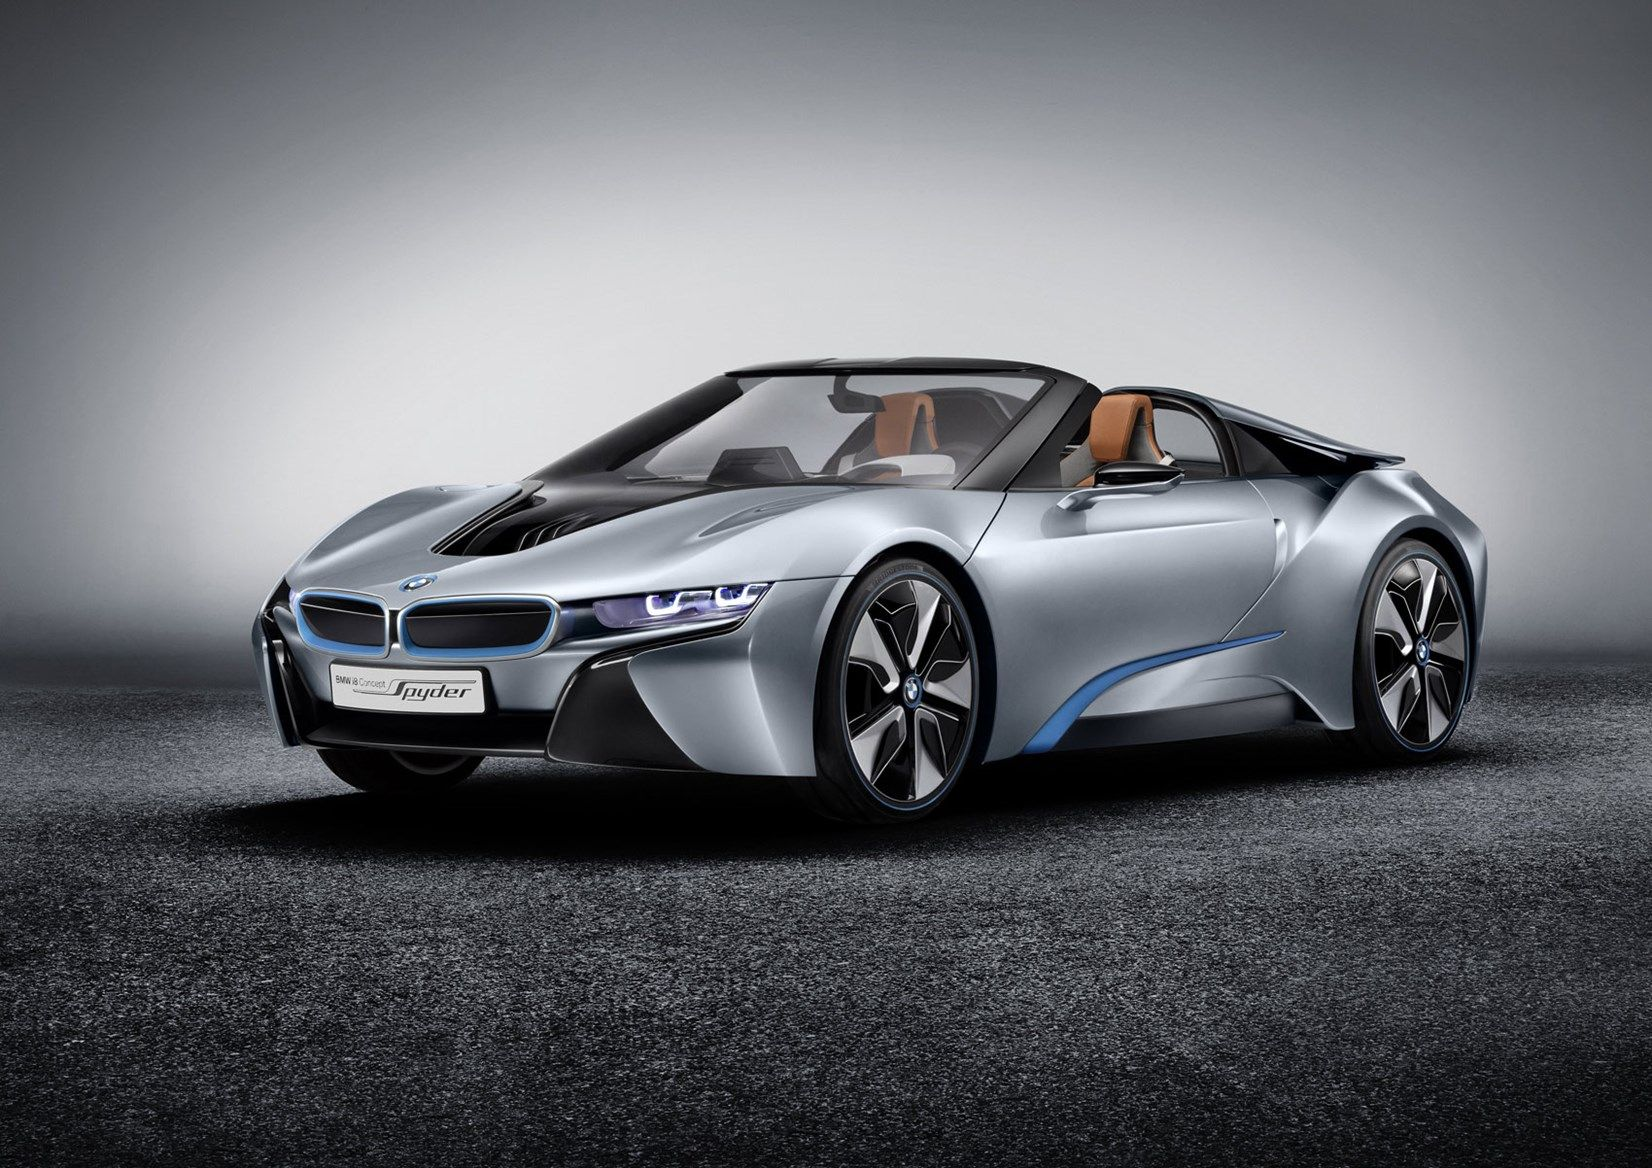 2018 Bmw I8 Roadster Driverland Pinterest Bmw I8 Bmw And Cars